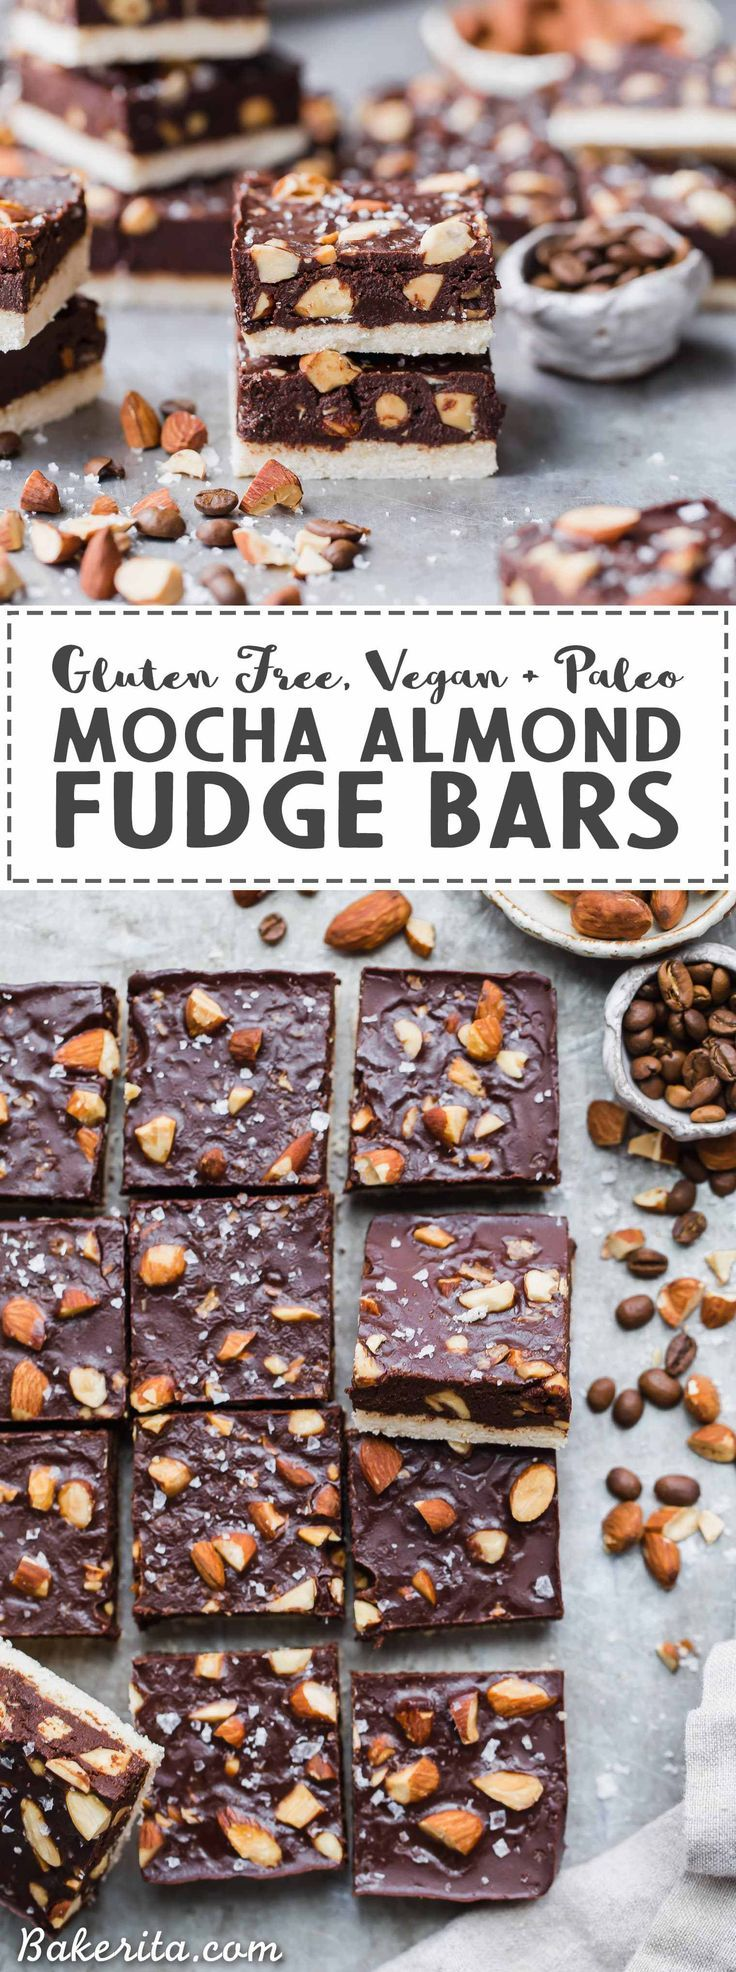 These Mocha Almond Fudge Bars are incredibly rich and delicious, with a chocolate-coffee fudge studded with crunchy almonds, all sitting on top of a simple shortbread crust. These gluten-free, paleo and vegan fudge bars are irresistible!